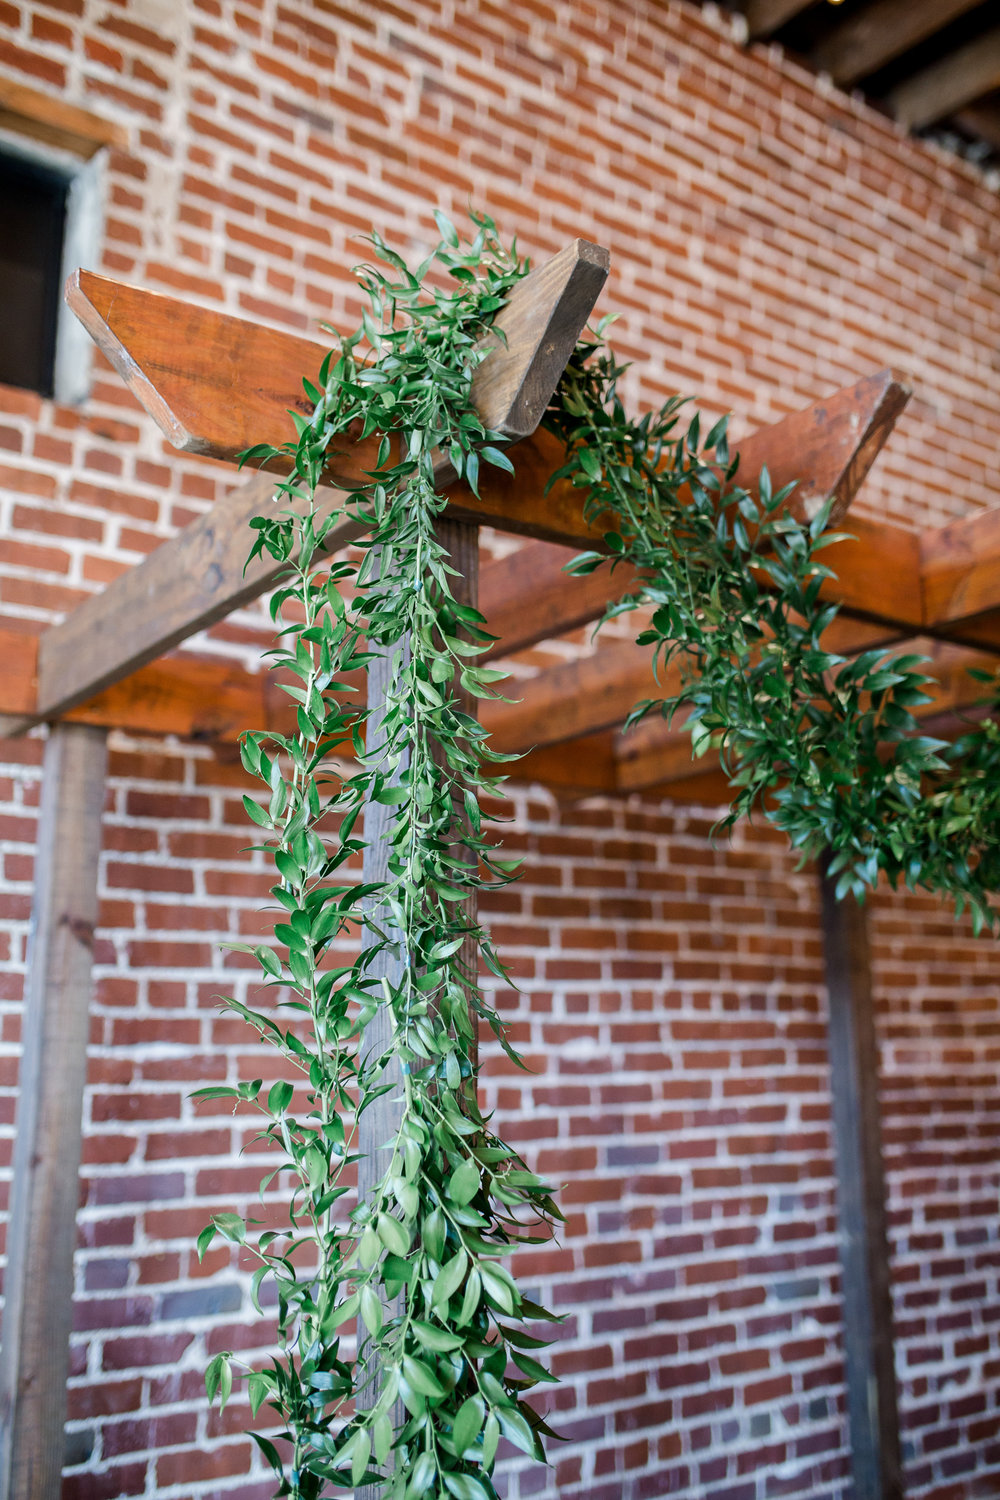 Downtown Knoxville Wedding Venue // Central Avenue Reception // Greenery & Exposed Brick